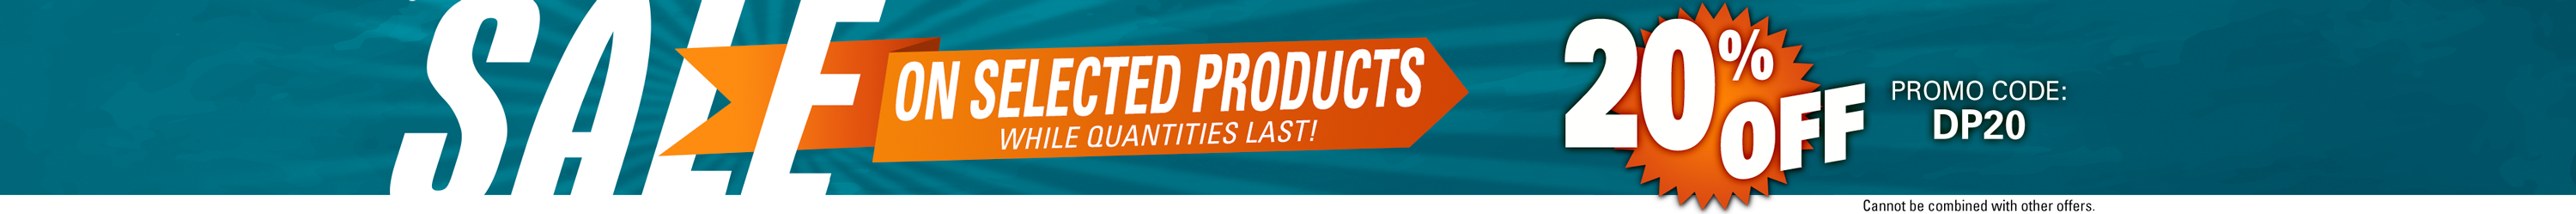 20% Off Select Products